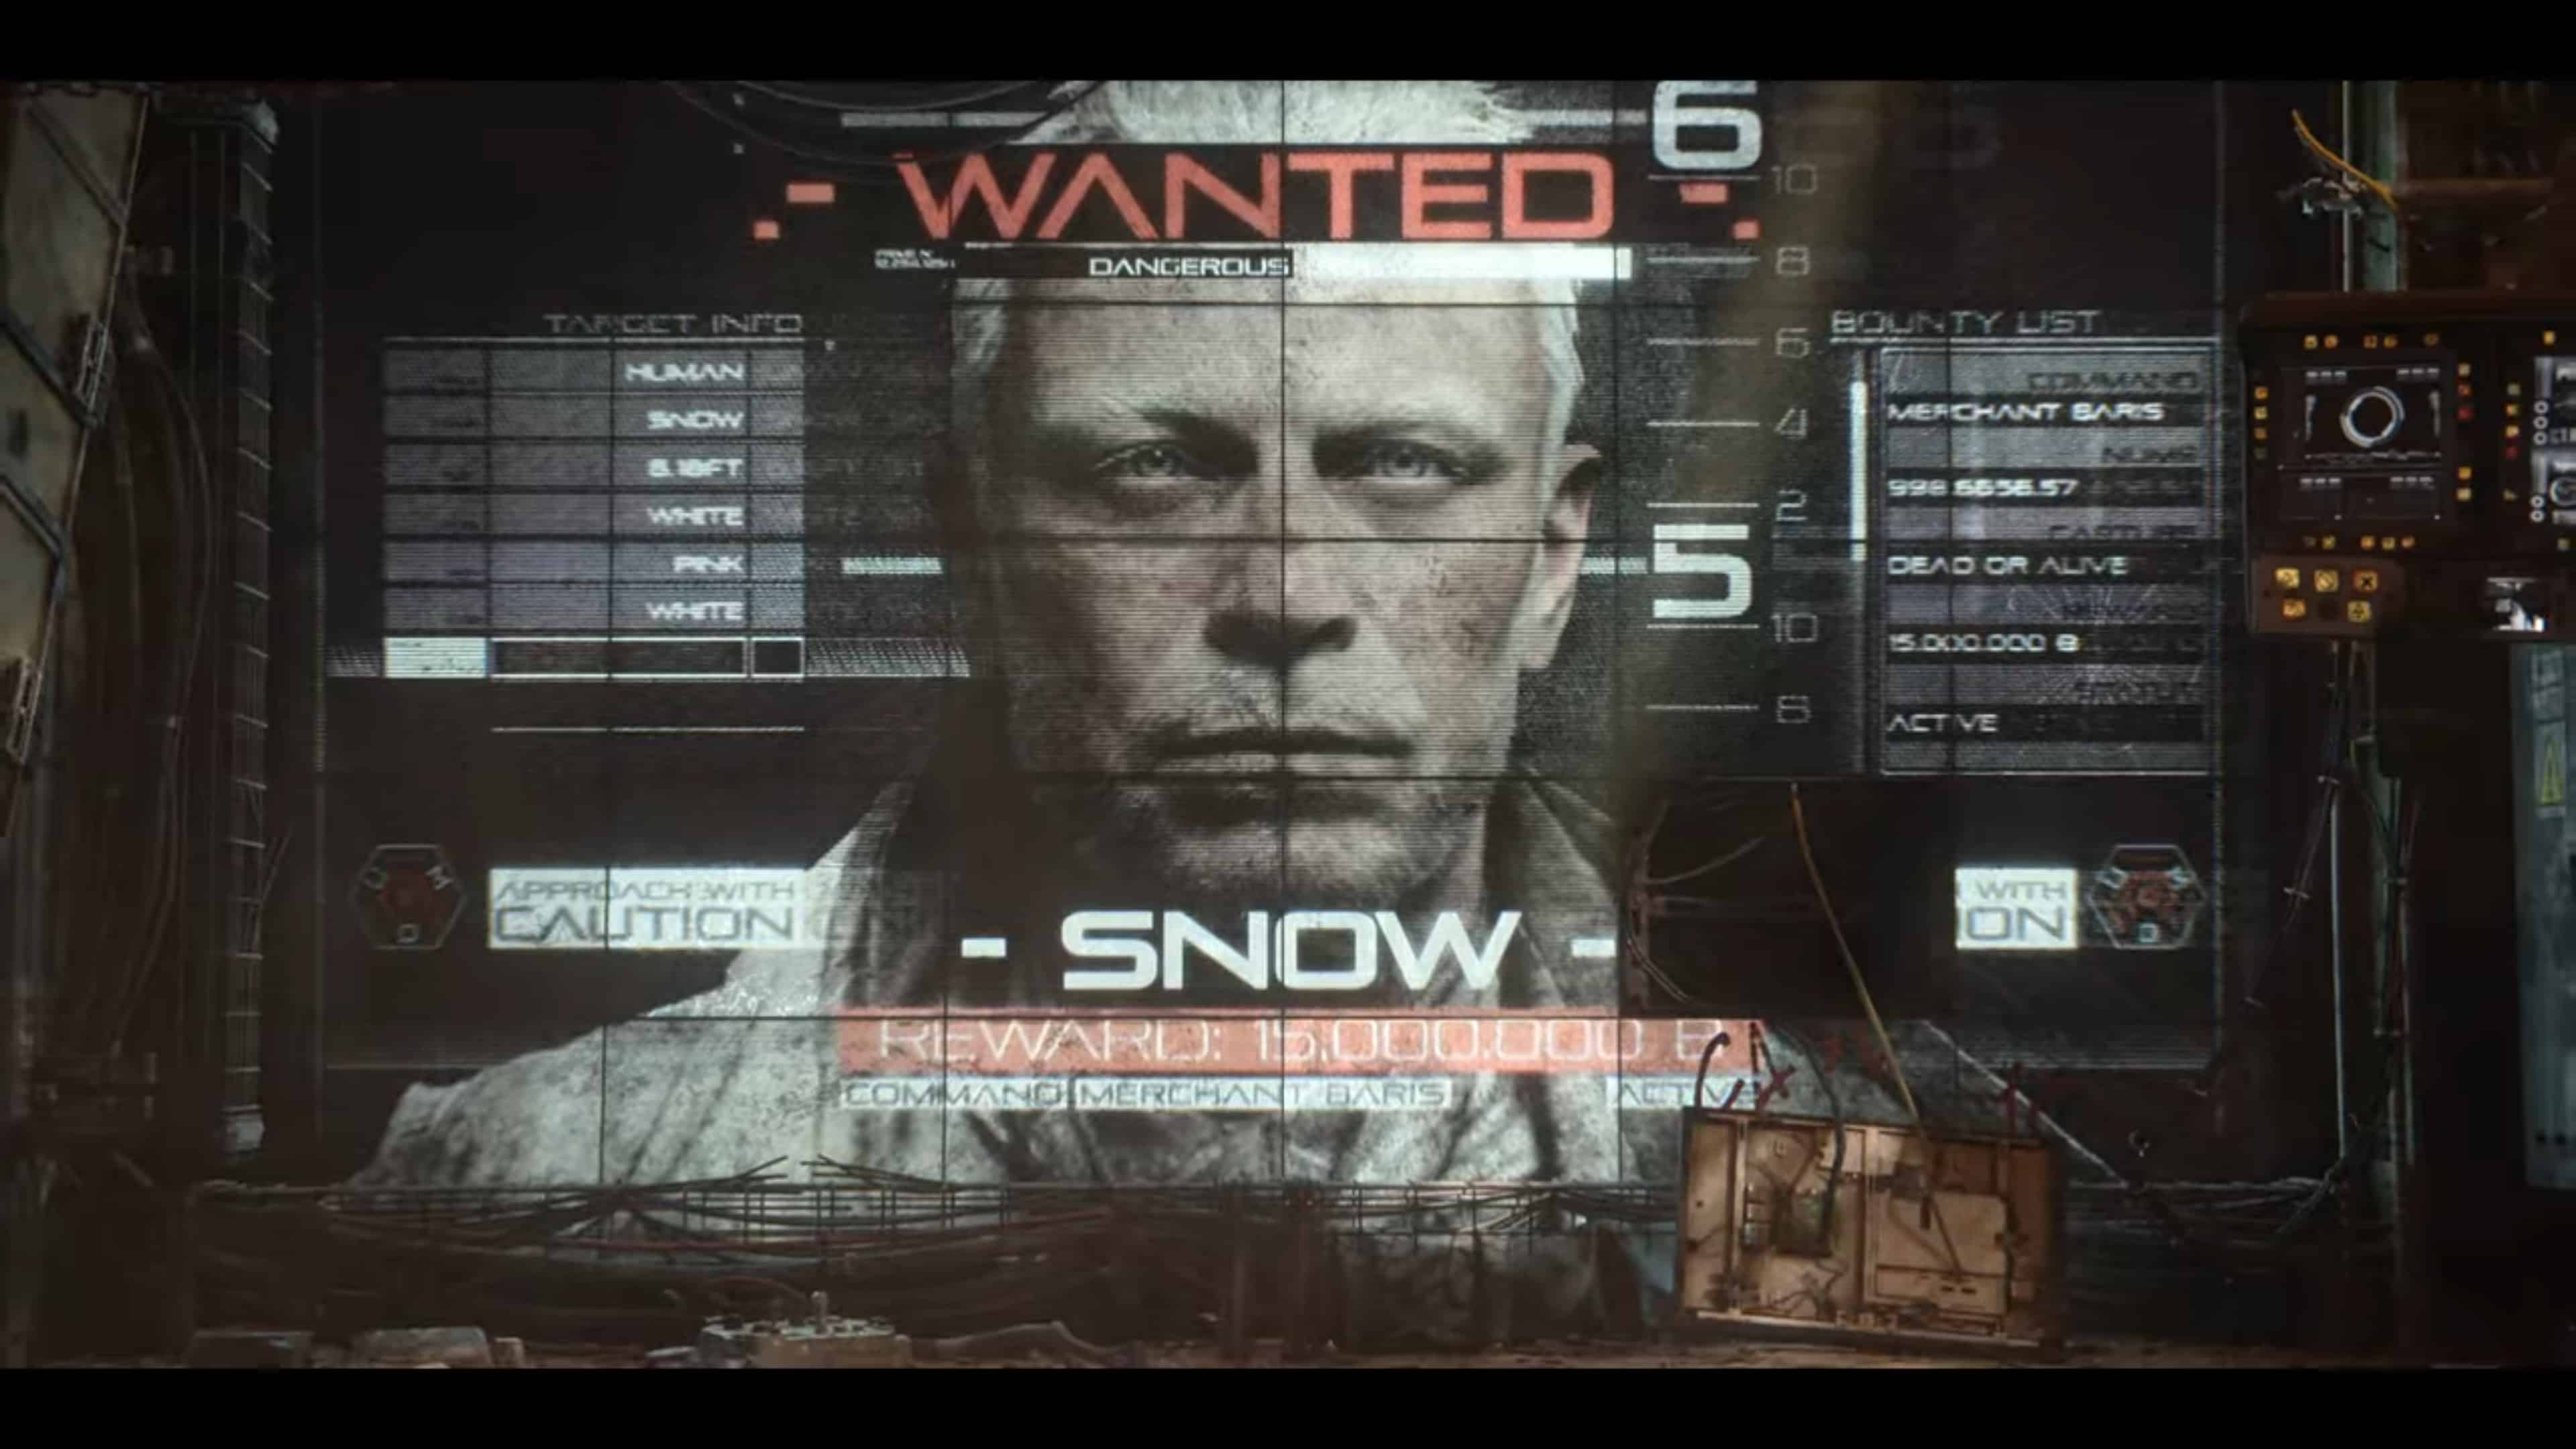 Snow's Wanted Poster